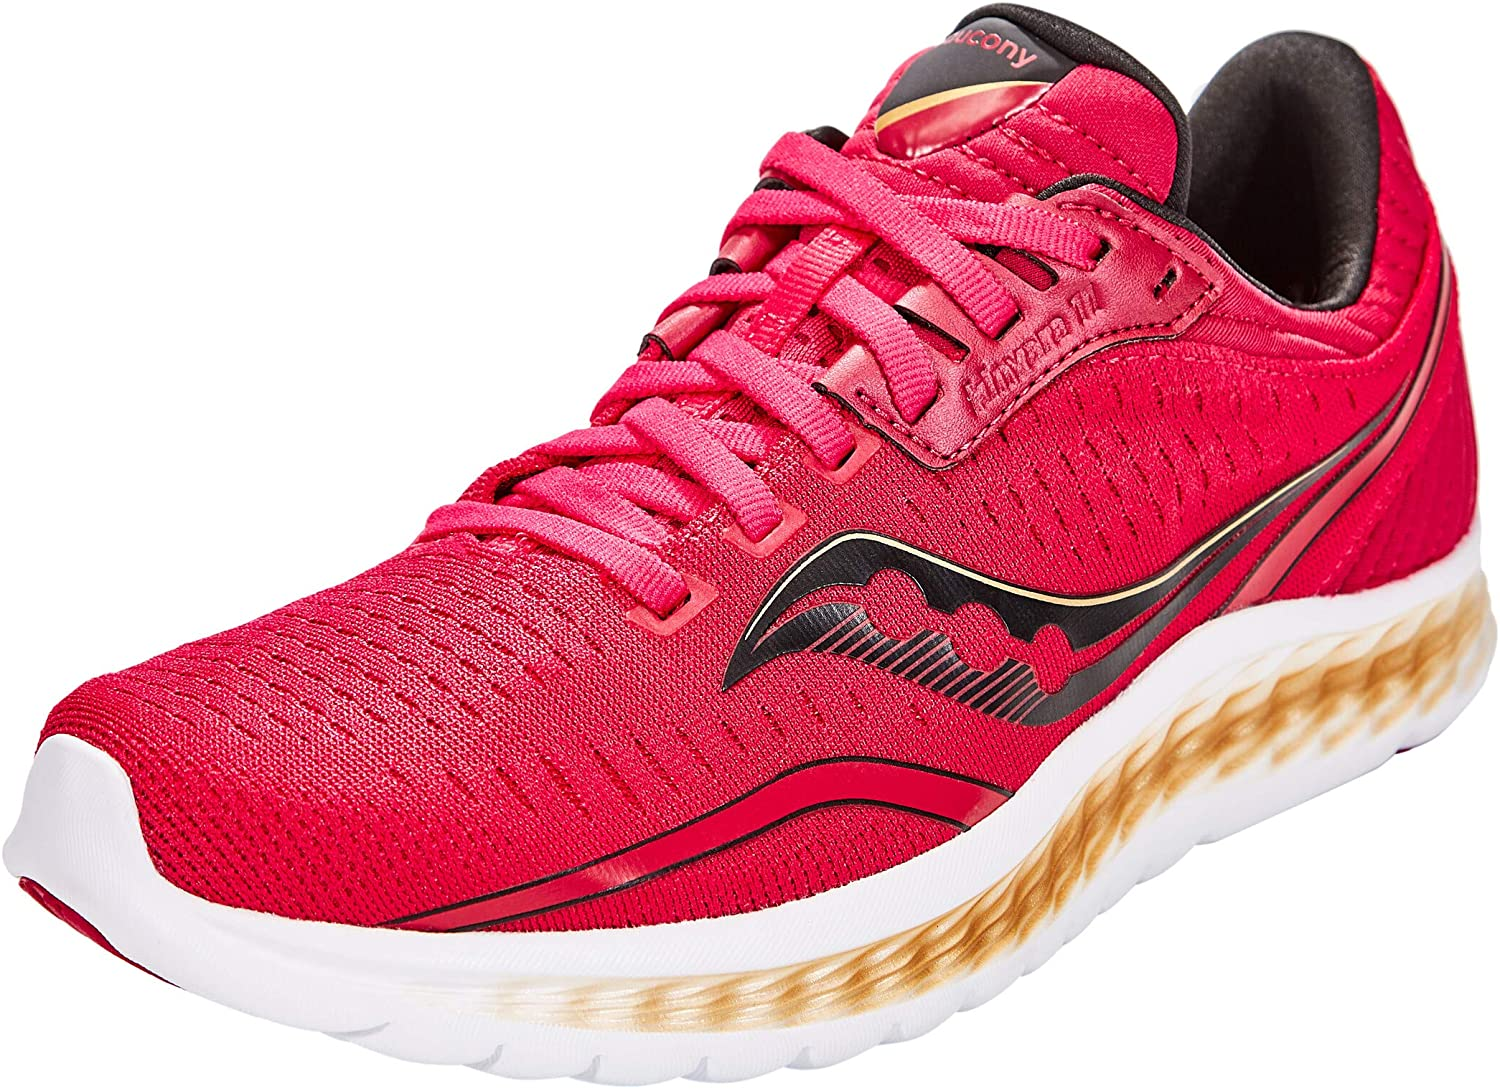 Saucony Women's Kinvara 11 Running Shoe in Berry Gold Side Angle View